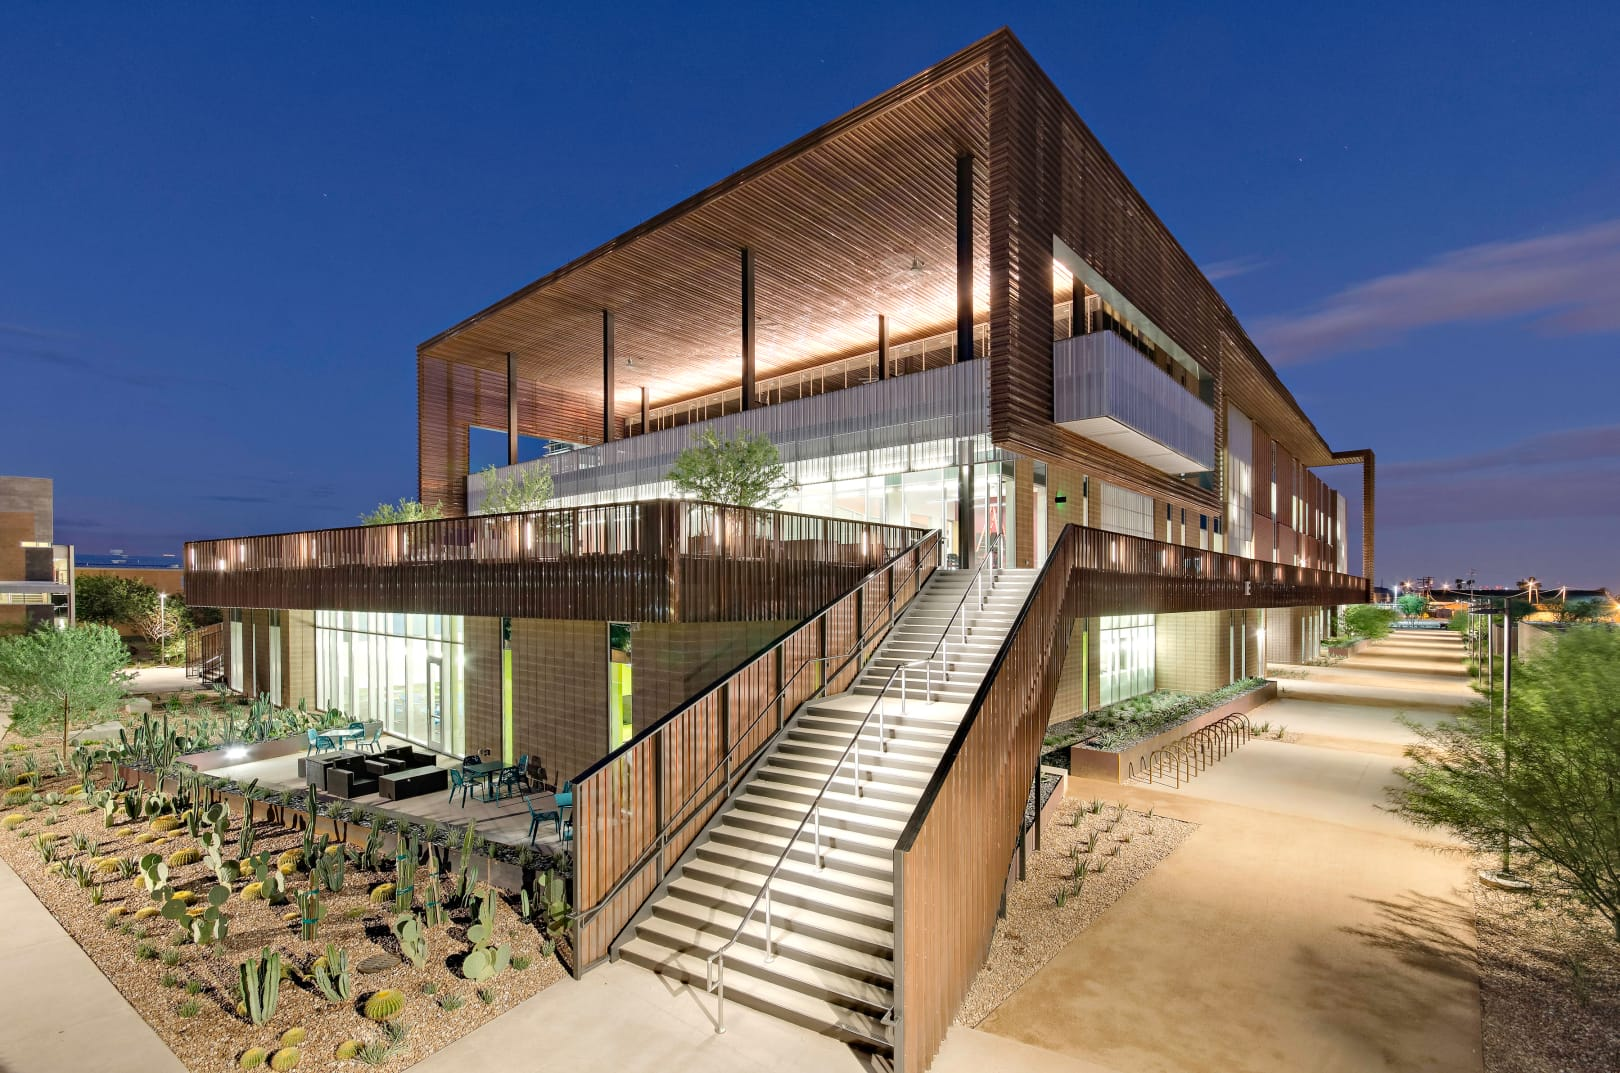 50+ Great Gateway College Of Architecture And Design